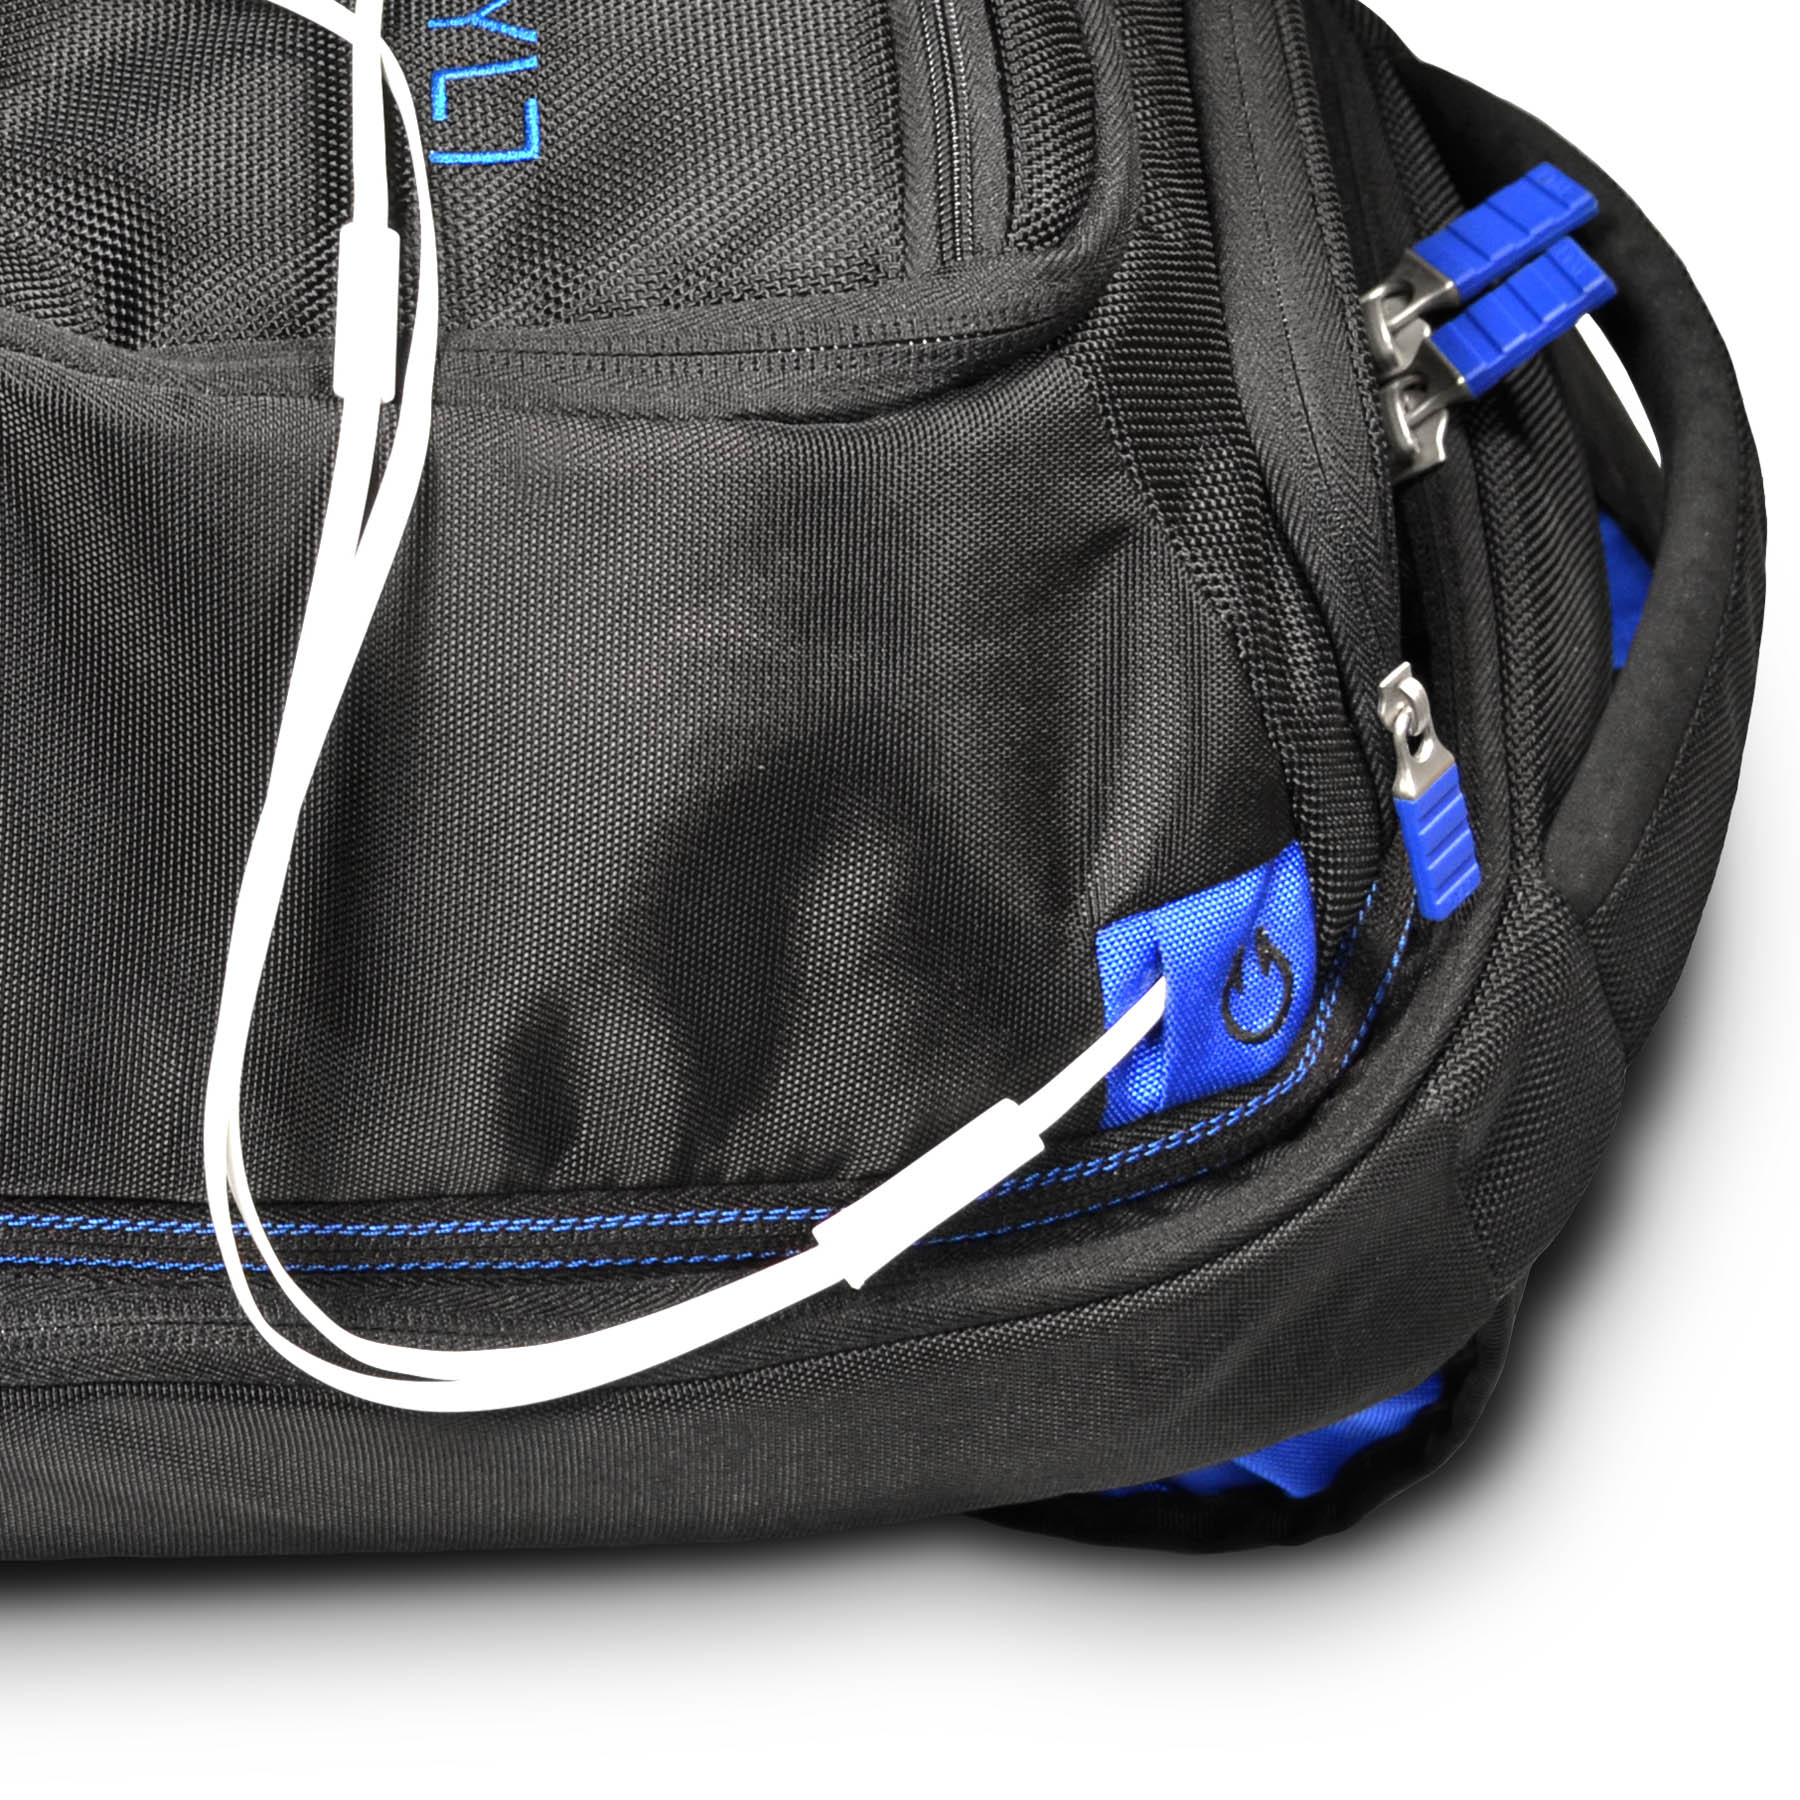 [CONTEST CLOSED] The TYLT Energi+ Backpack Giveaway